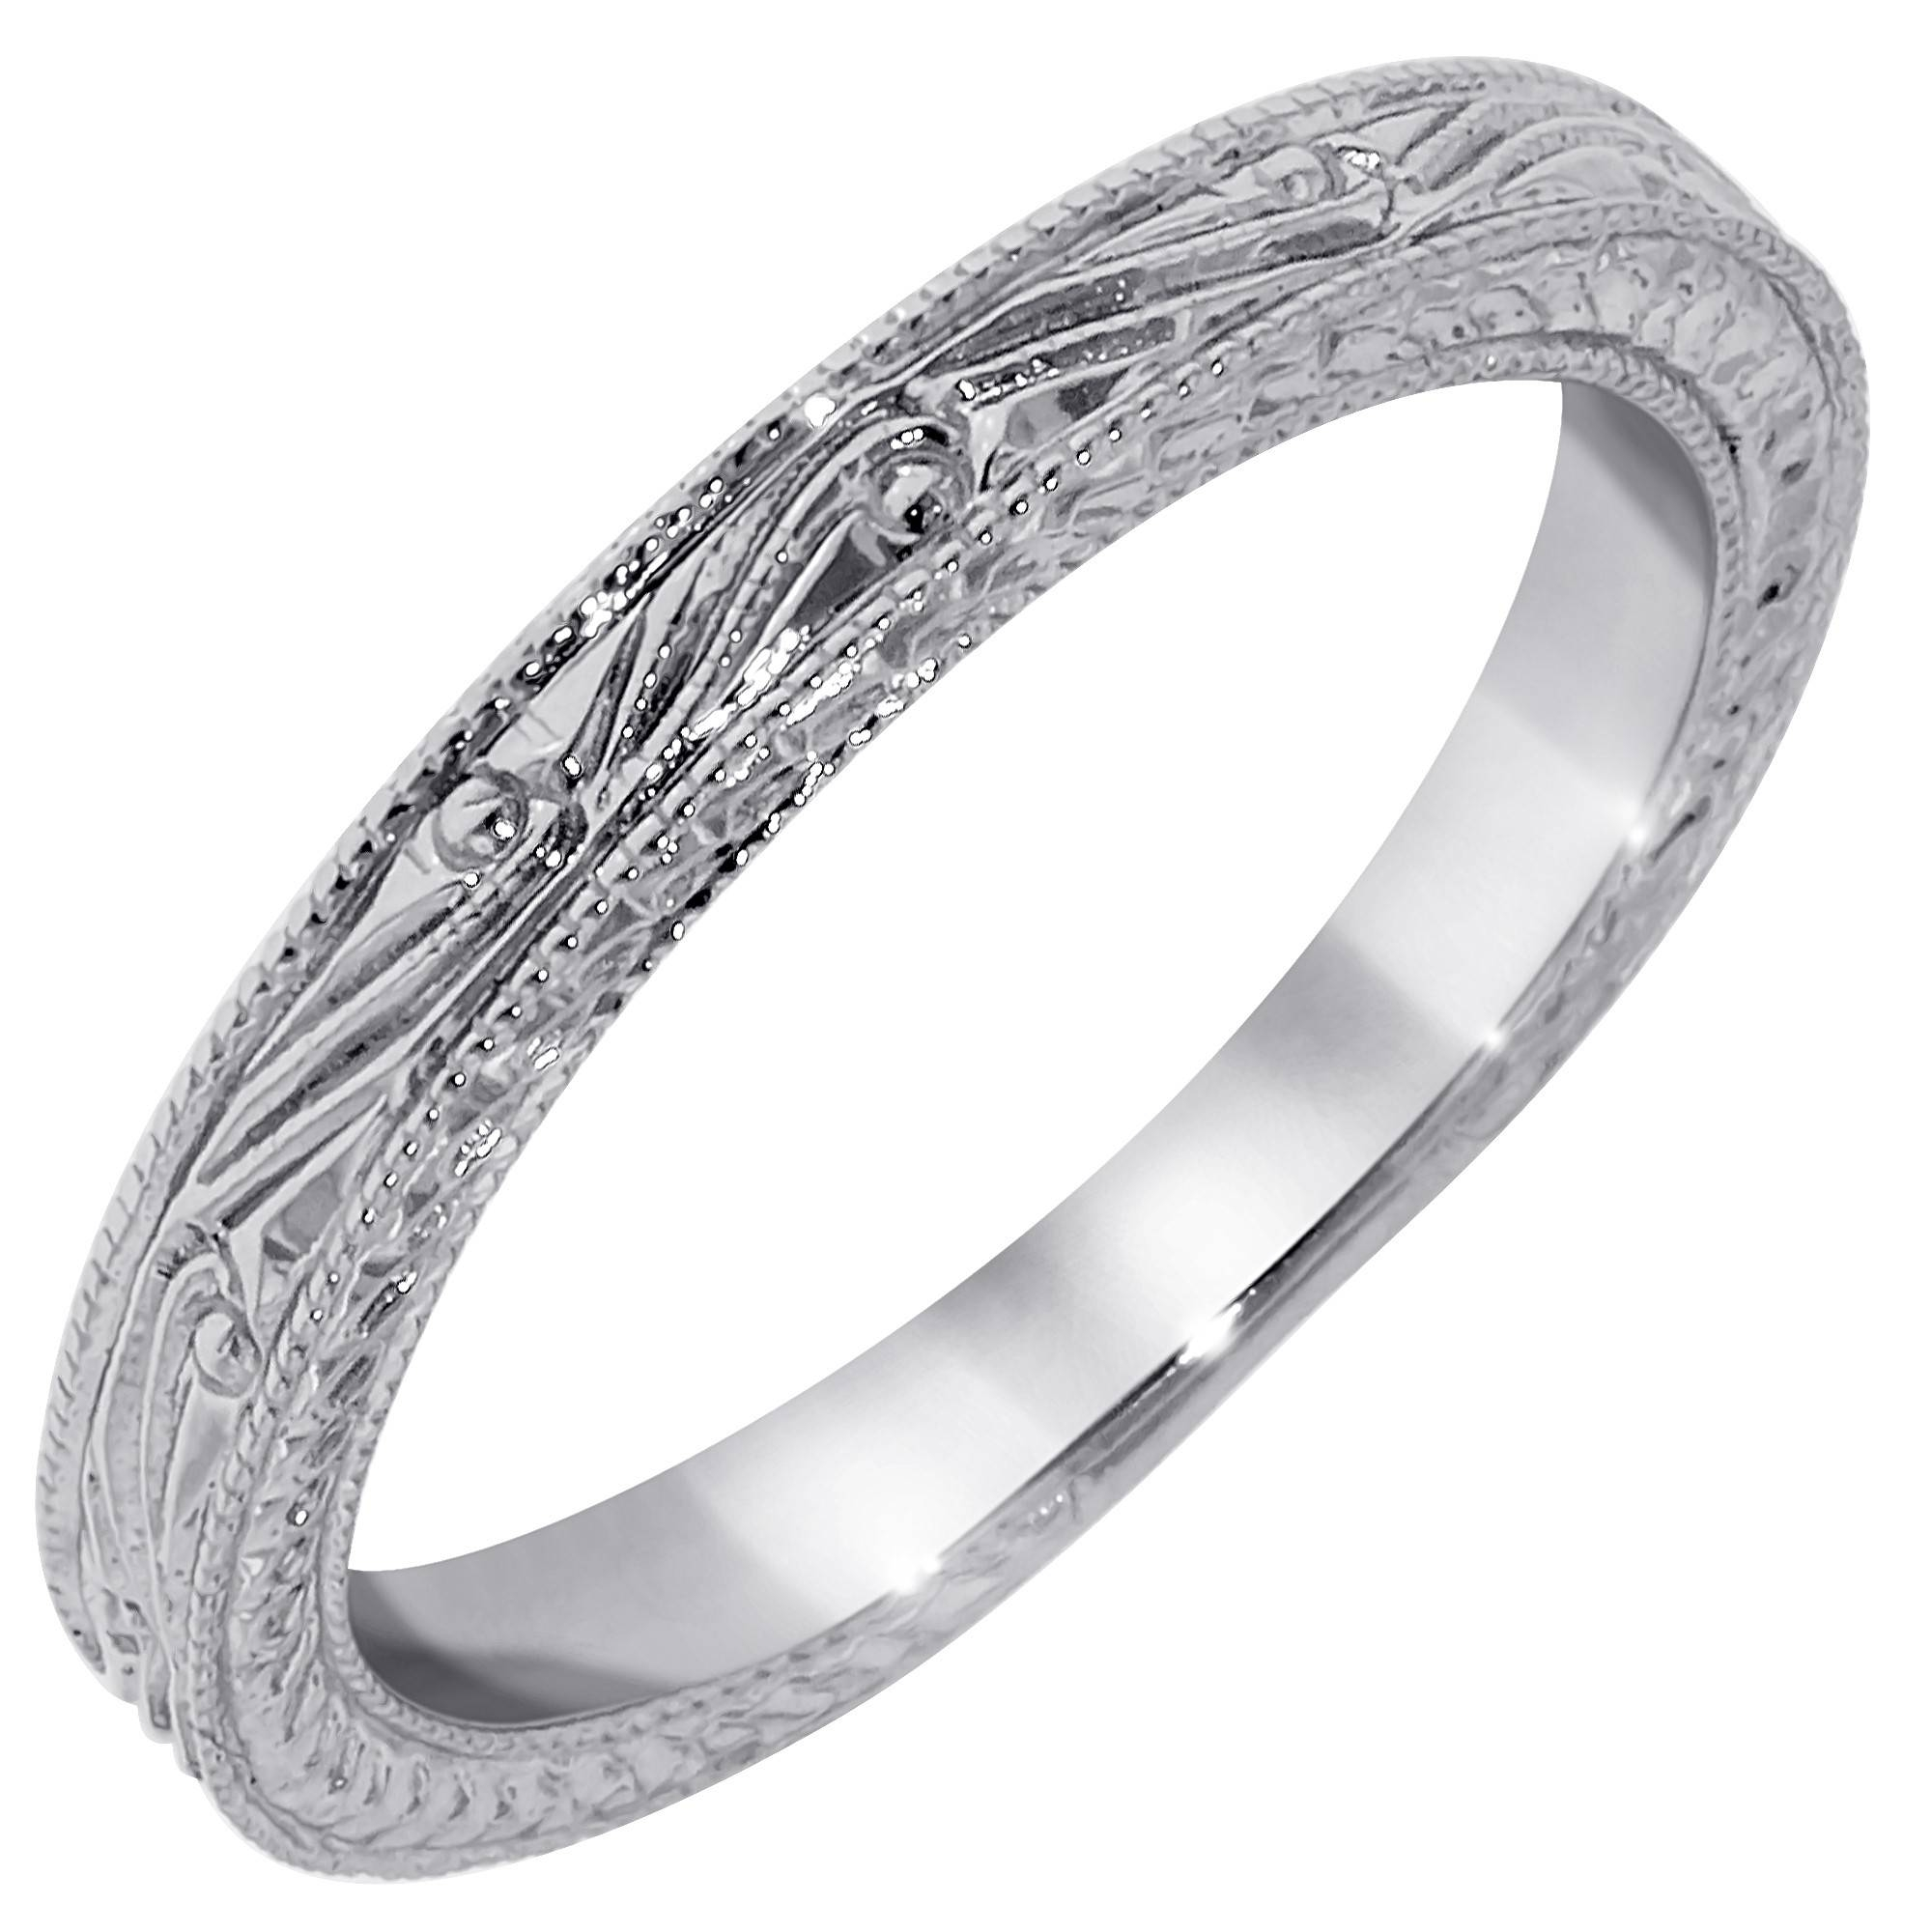 Timeless Designs Engraved Wedding Band In 14Kt White Gold Within Engraved Wedding Bands (View 10 of 15)